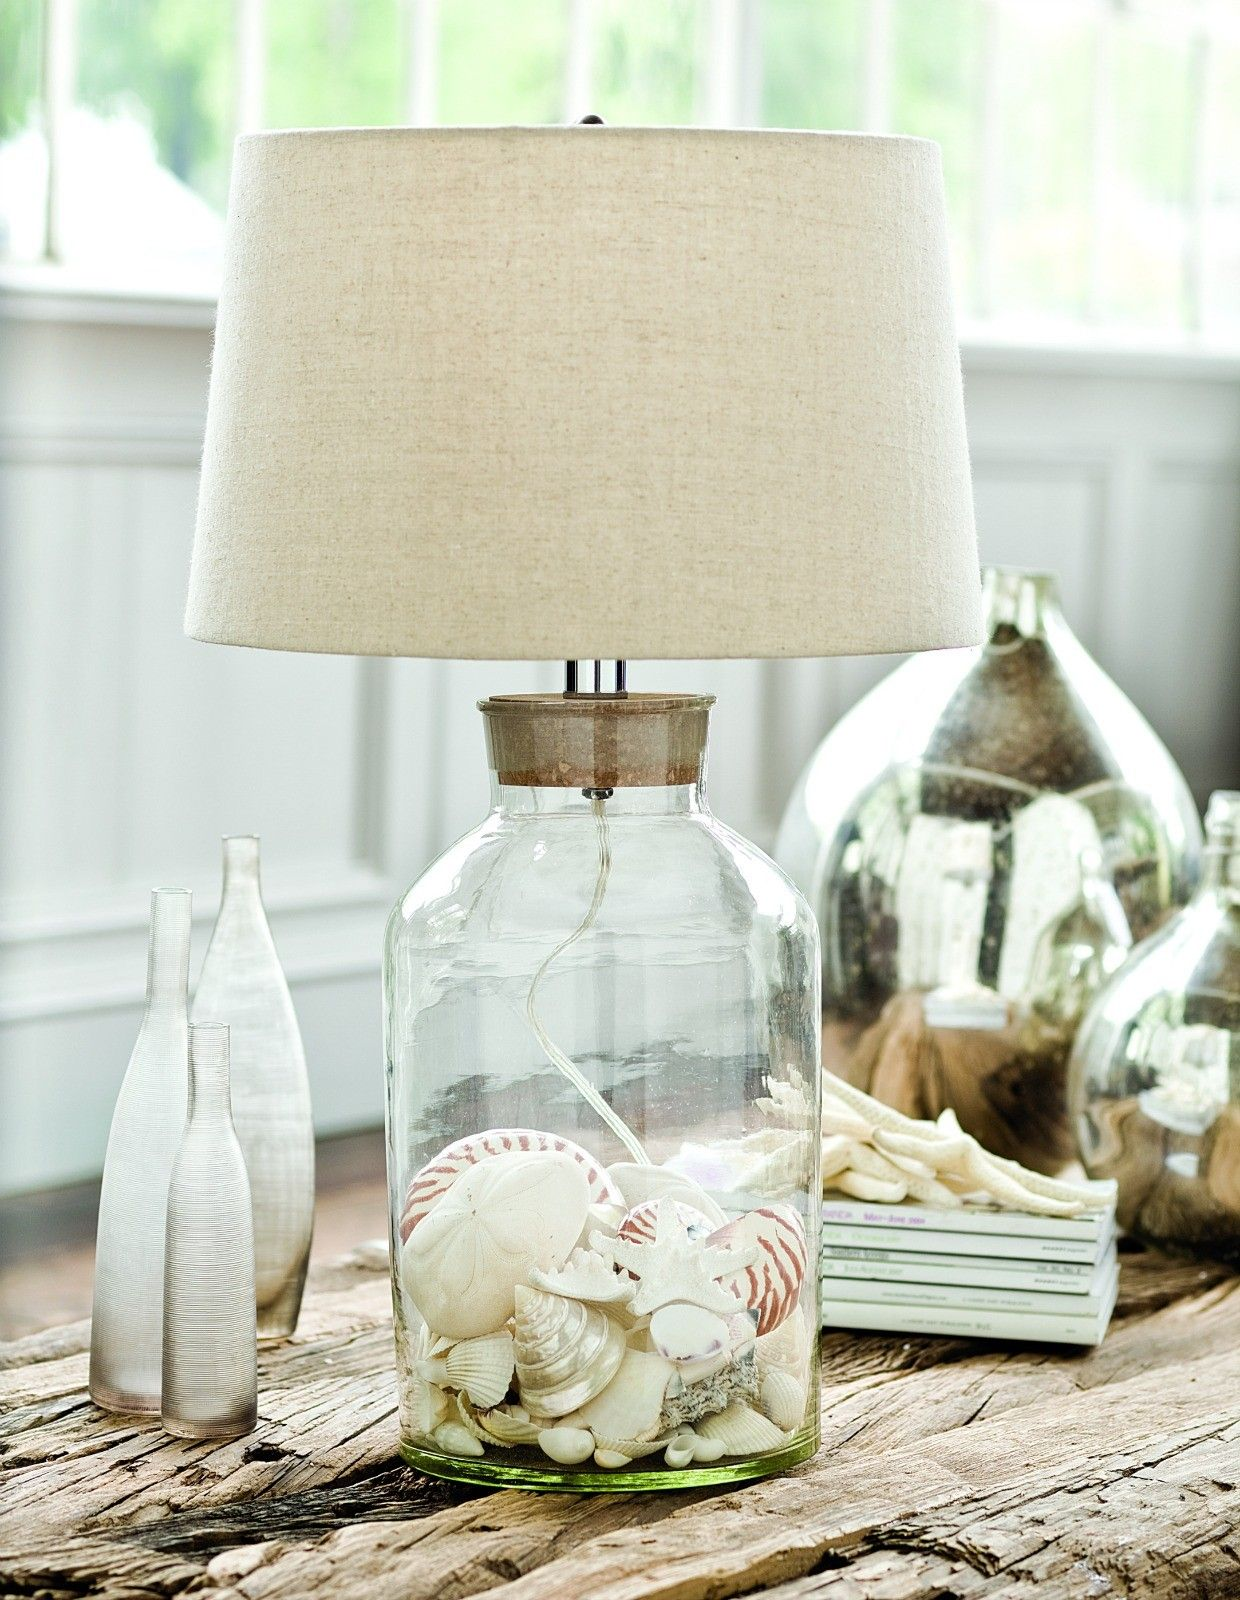 Beach Cottage Style Table Lamp With A Removable Cork Top To Make Filling  The Round Jar